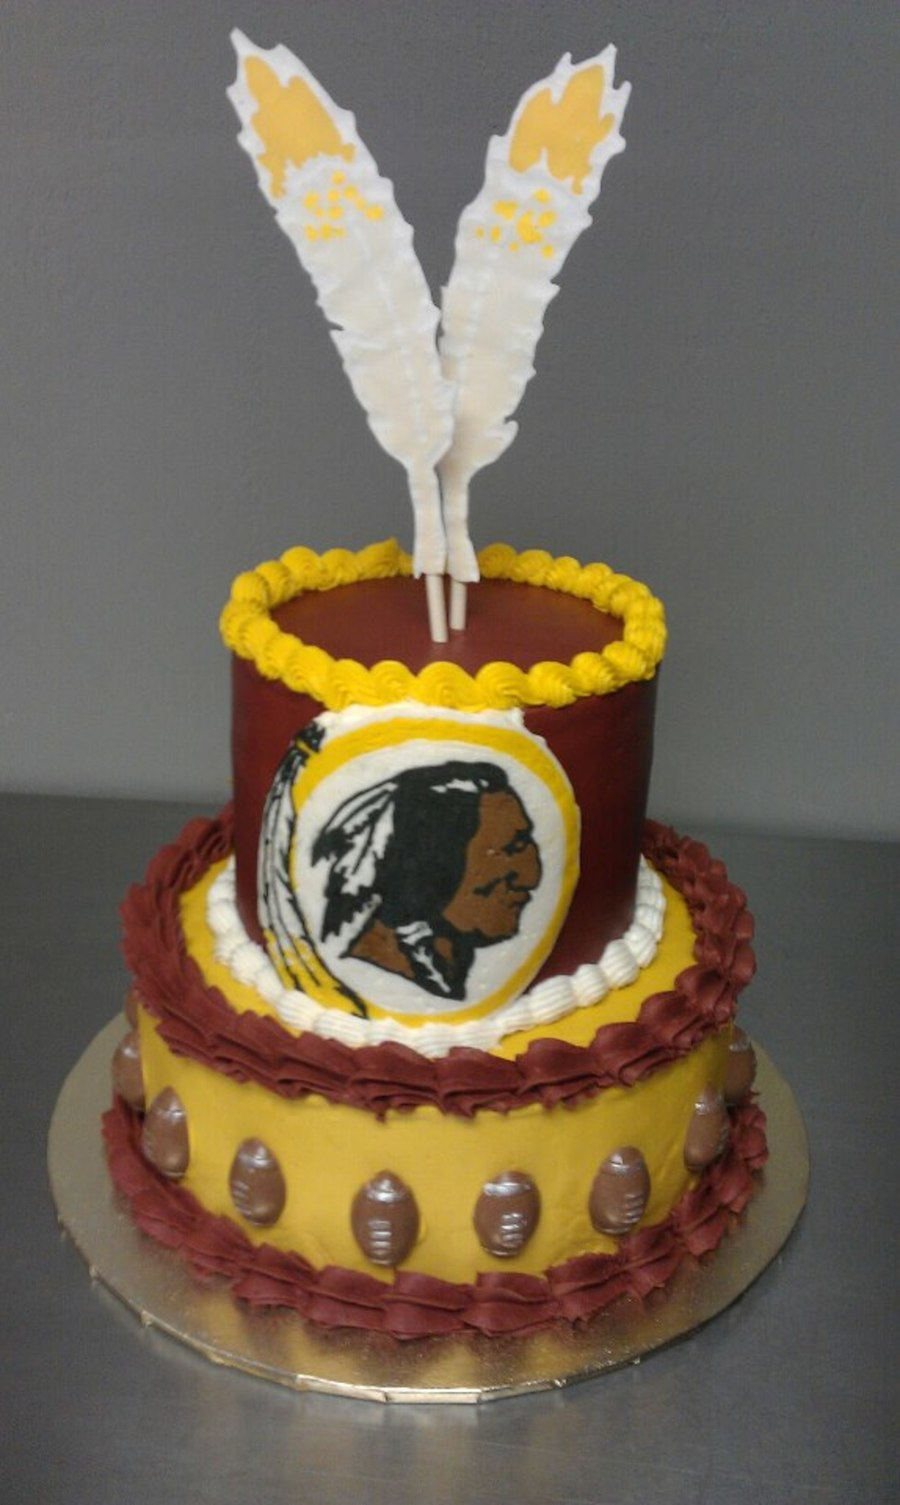 Washington Redskins Cake on Cake Central